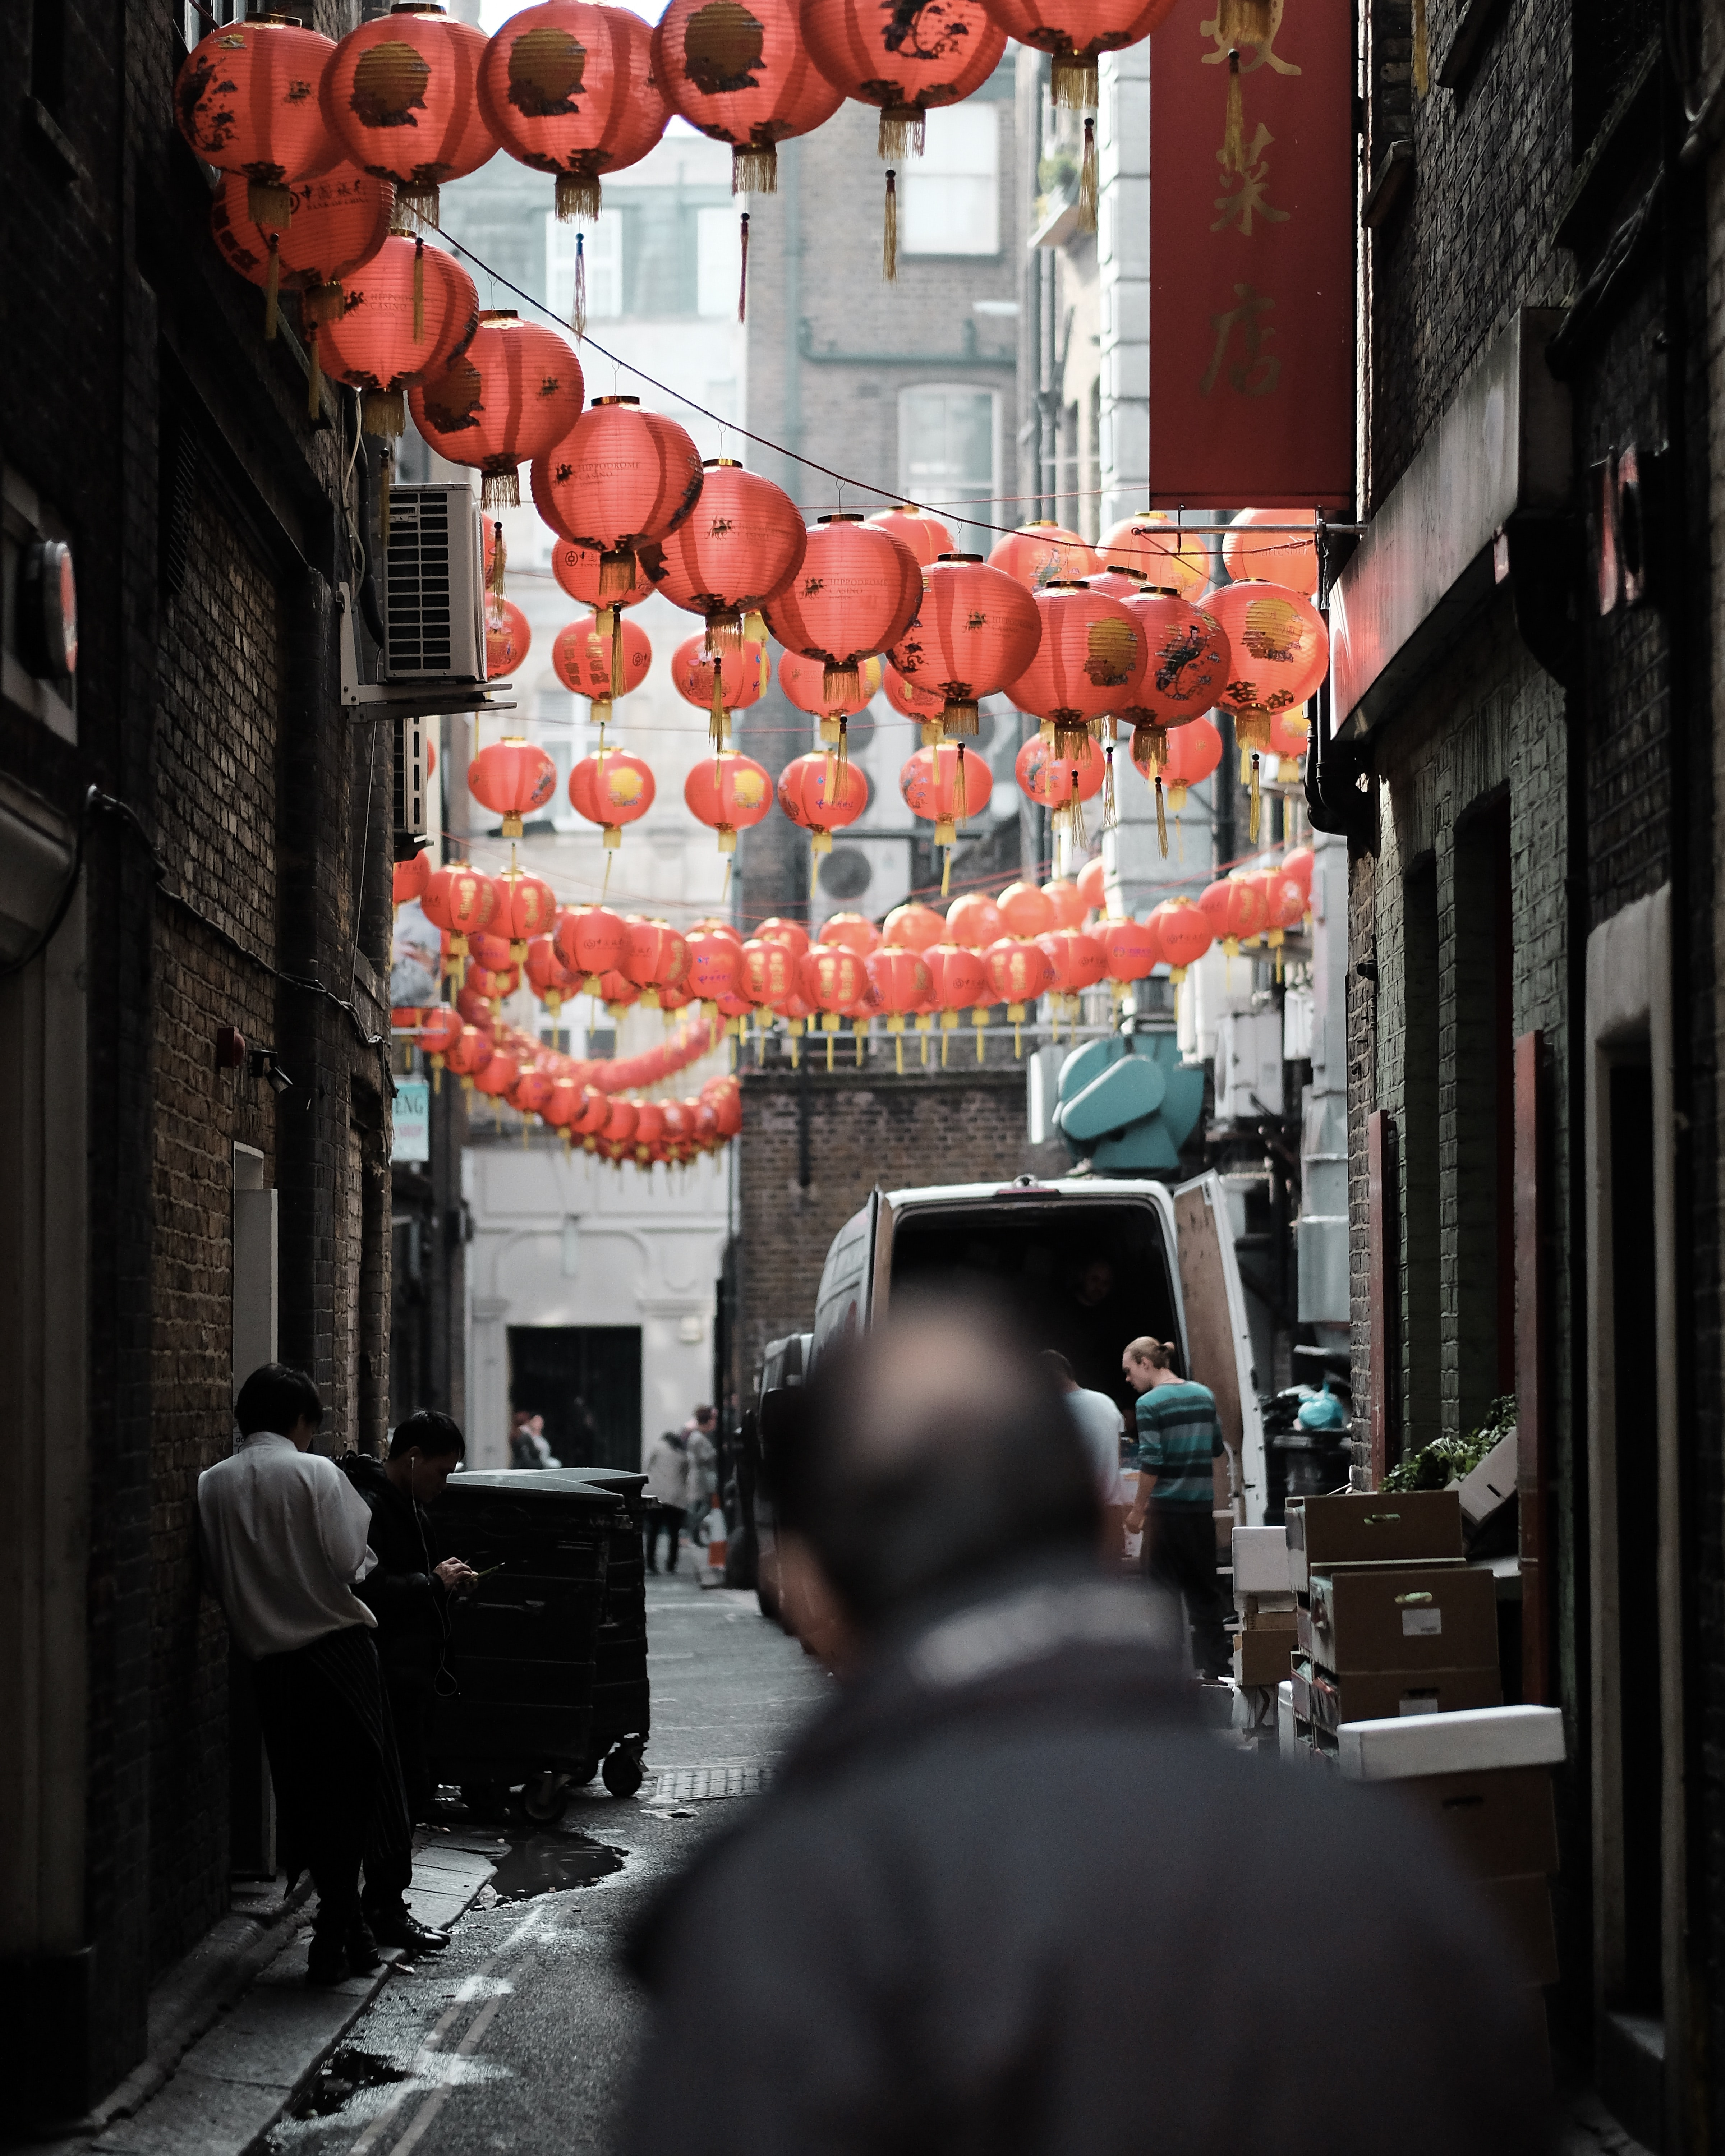 A man looks down an alleyway with strings of paper lanterns hung from the buildings